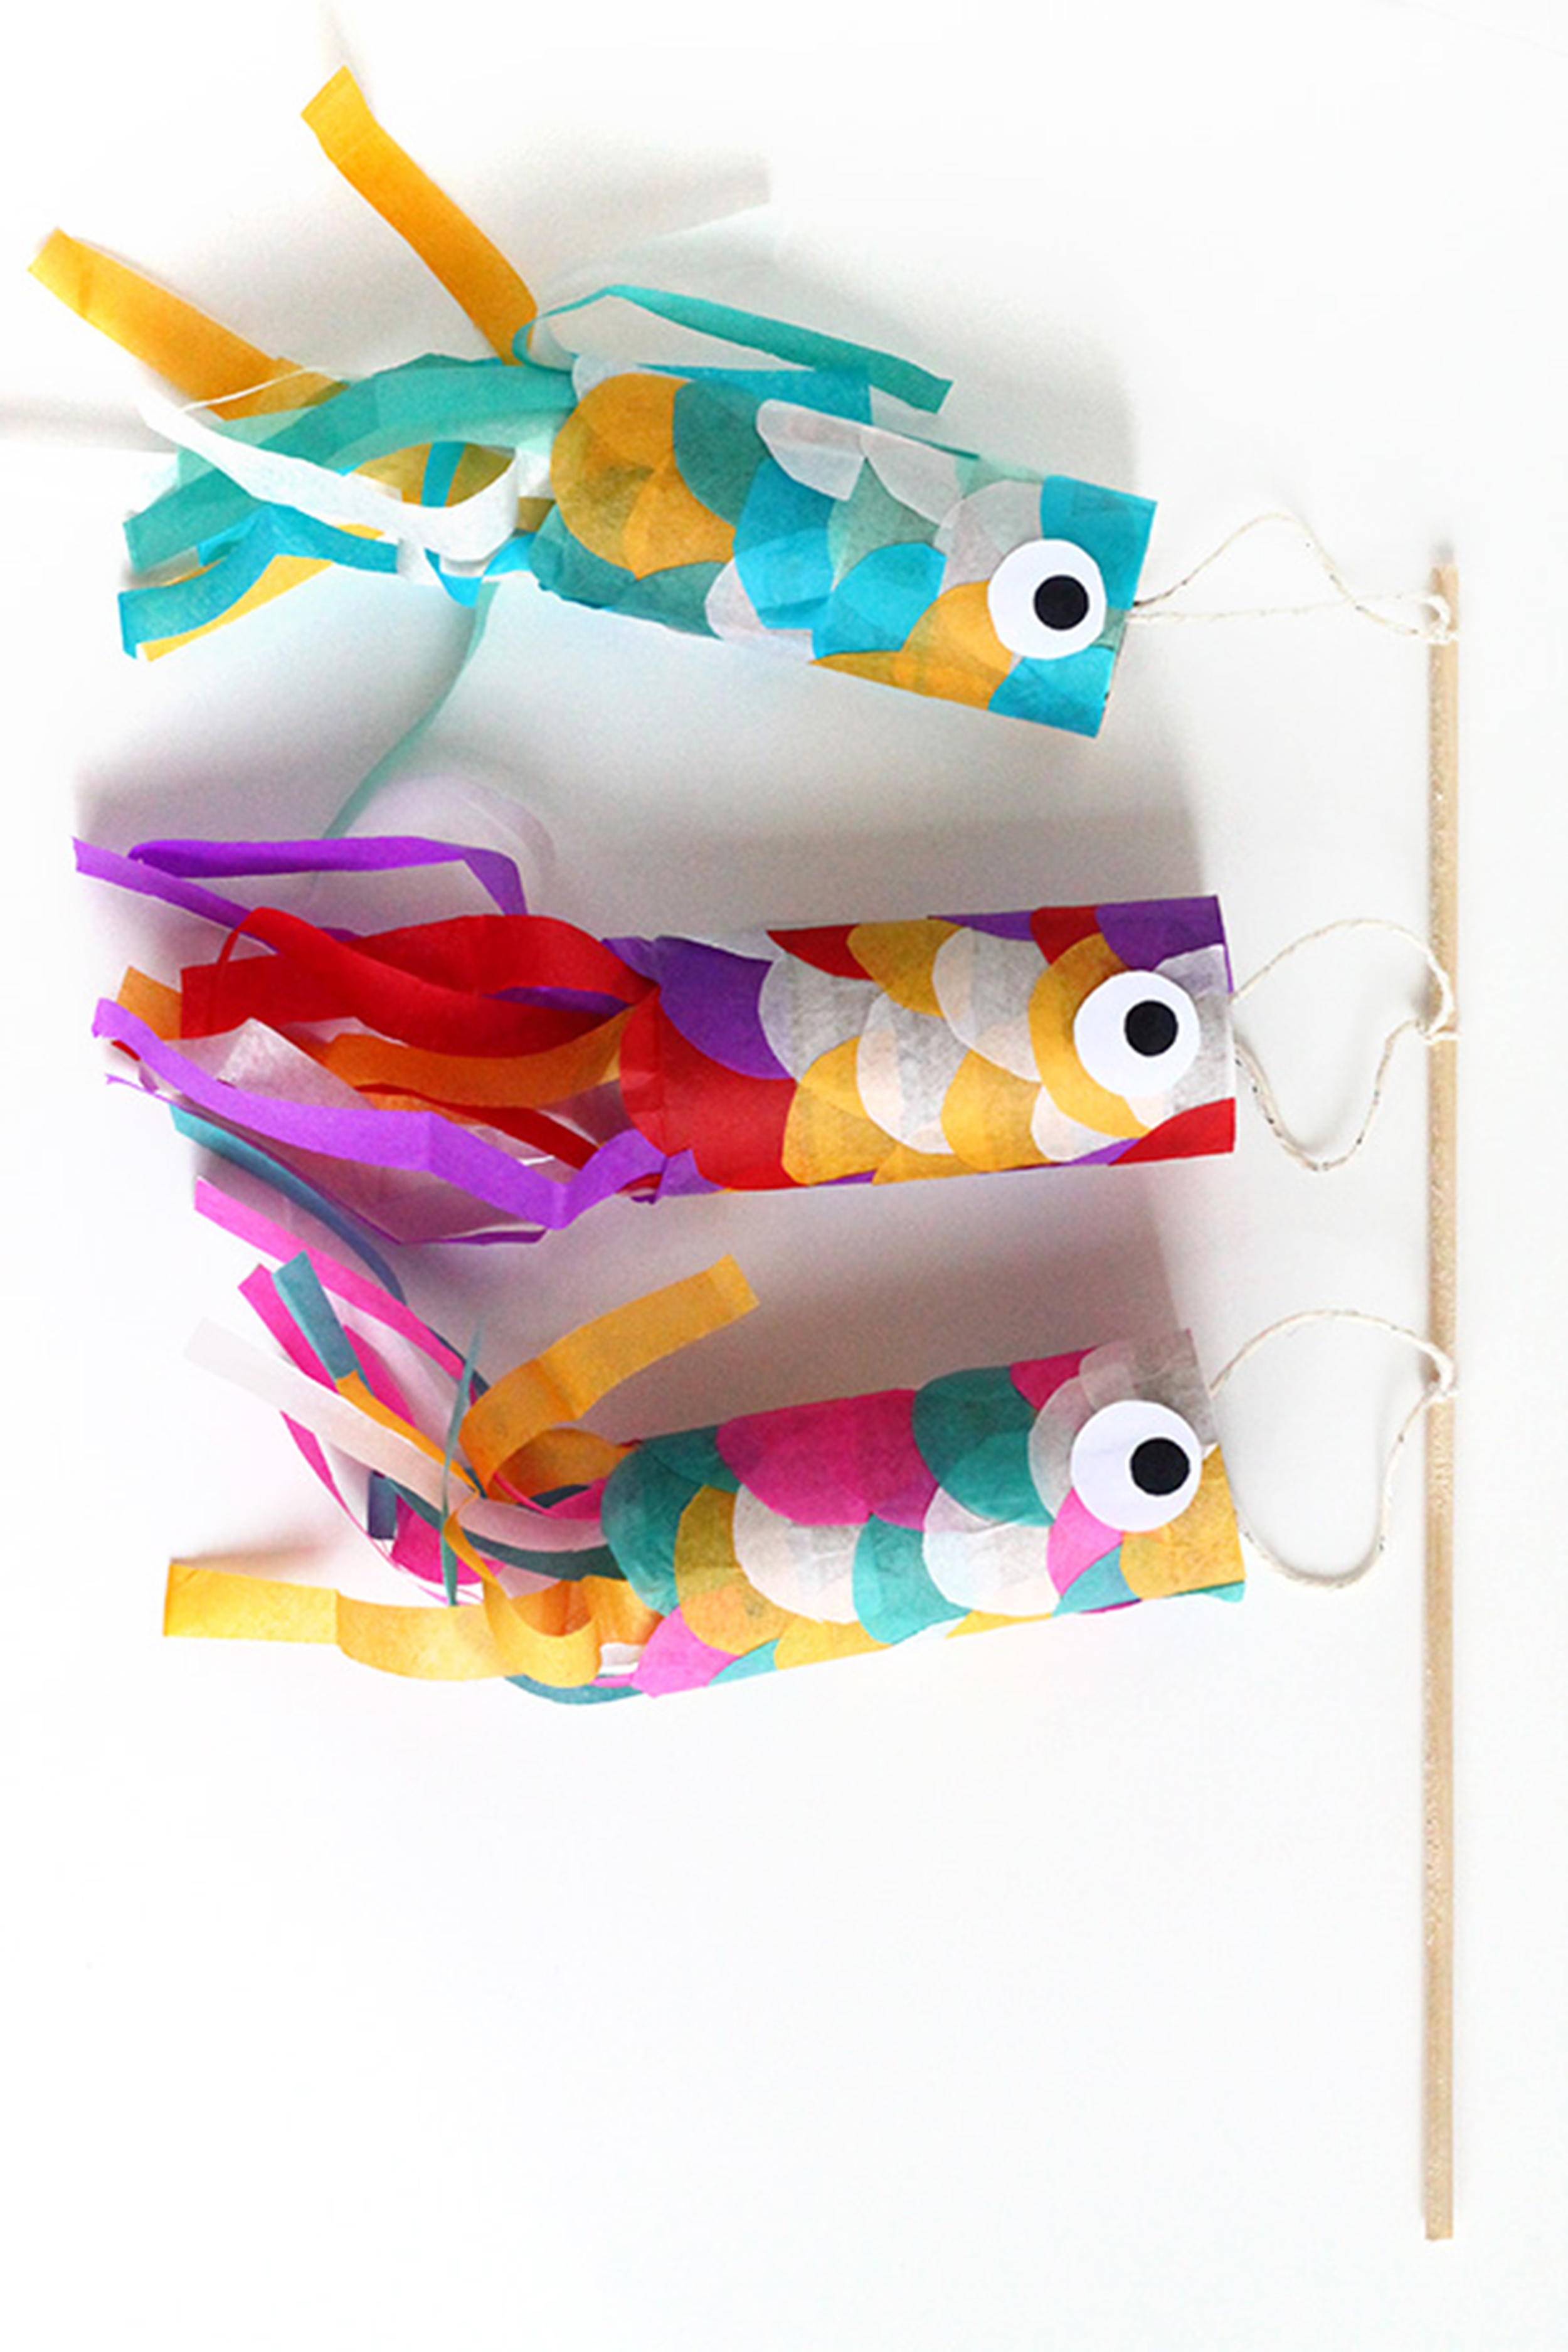 Create a japanese koi carp kite norden farm centre for for Koi fish kite